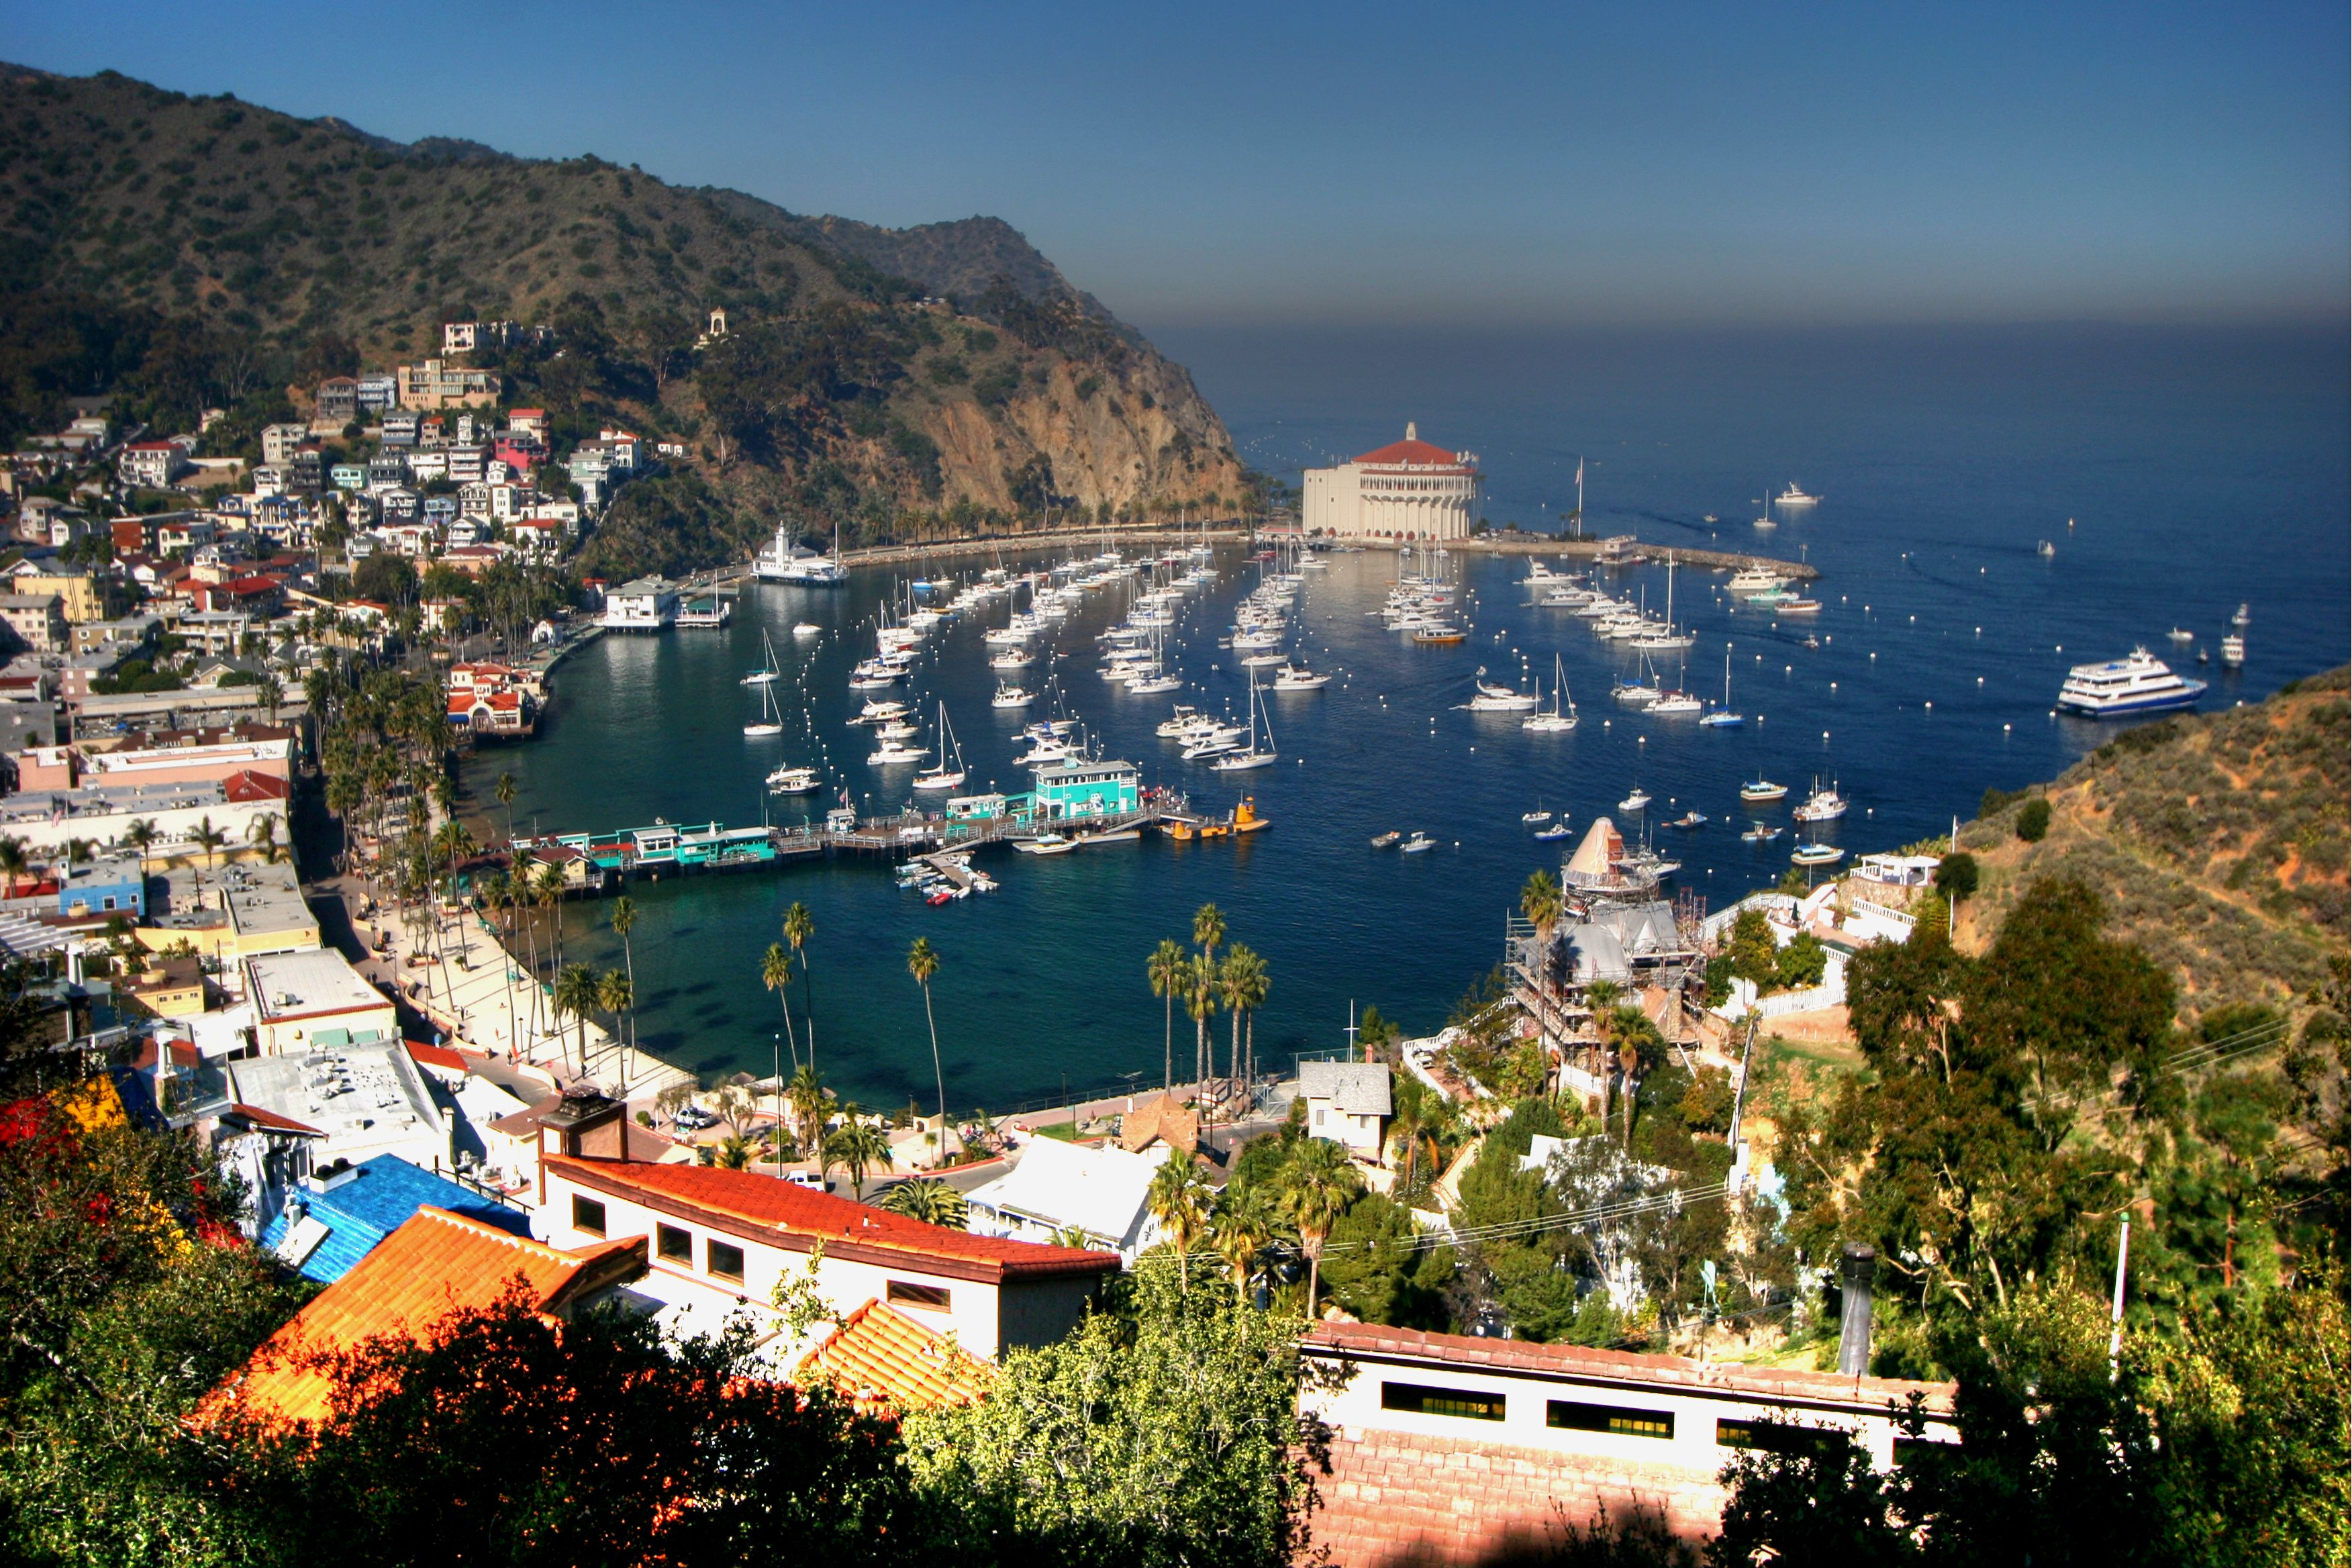 View of Avalon village, Catalina island, about 1 hour away from the California coast at Long Beach by catamaran.